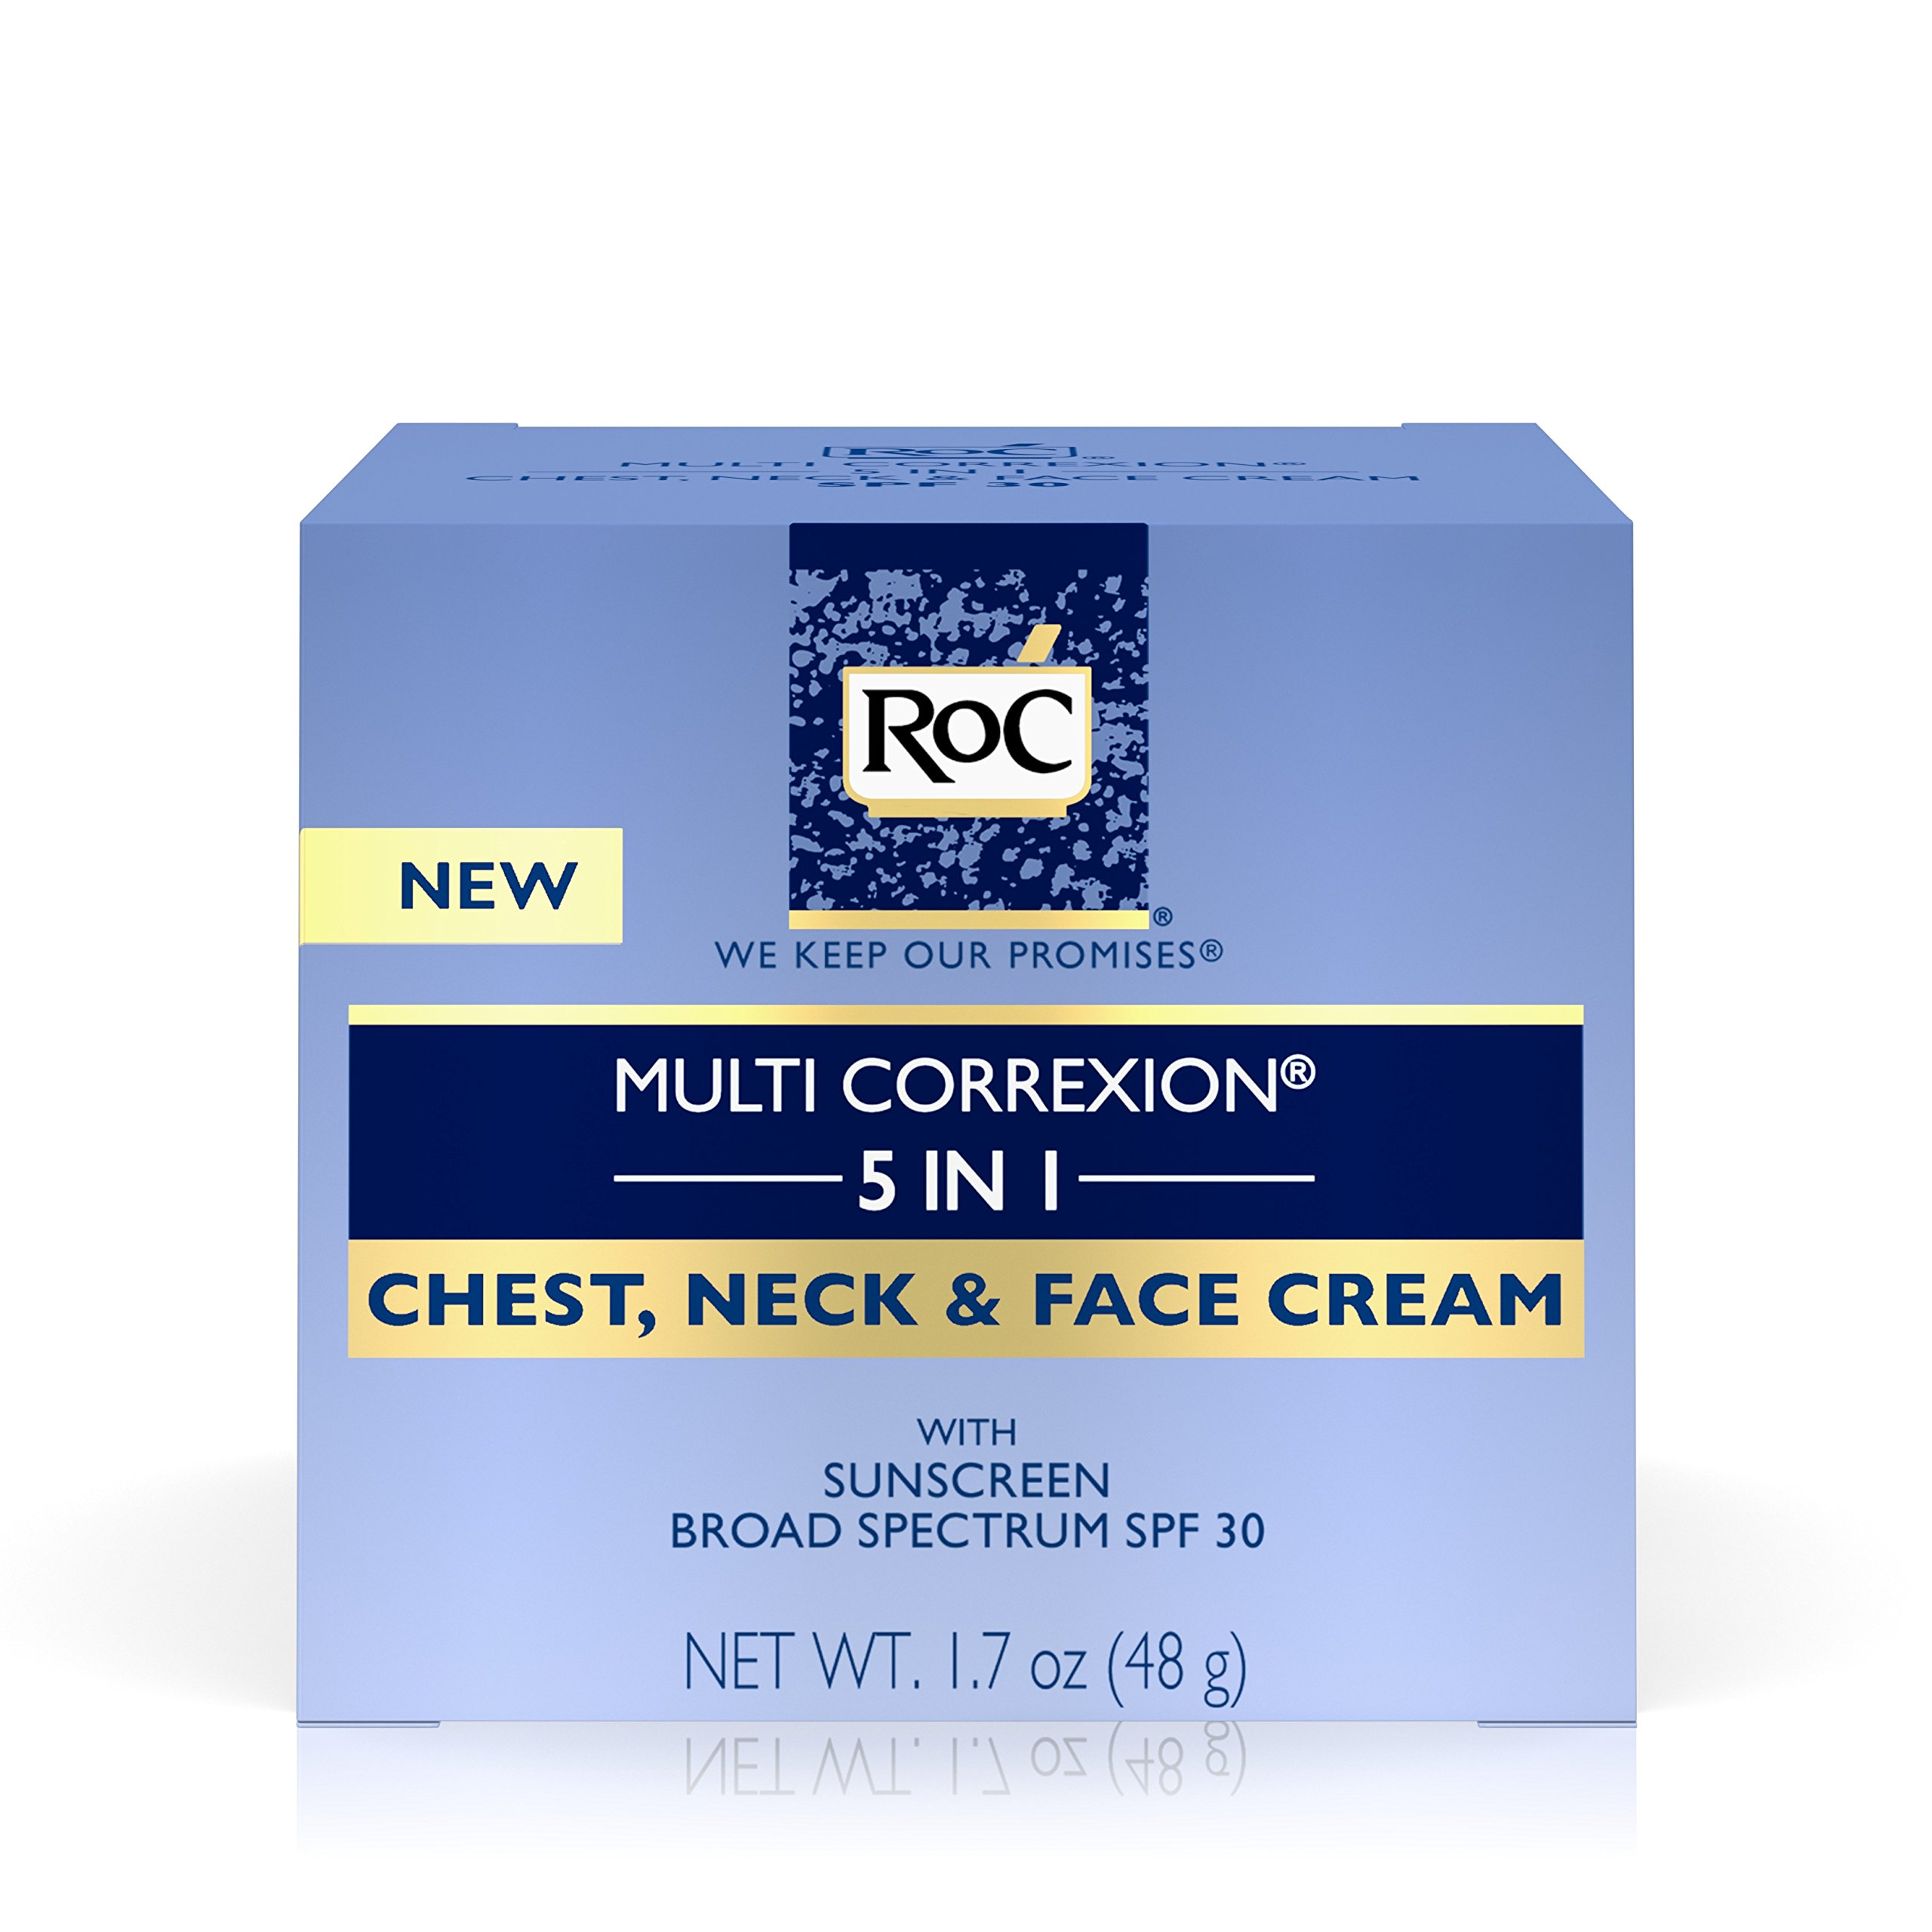 RoC Multi Correxion 5 in 1 Anti-Aging Chest, Neck and Face Cream with SPF 30, Moisturizing Cream Made with Vitamin E, 1.7 oz by RoC